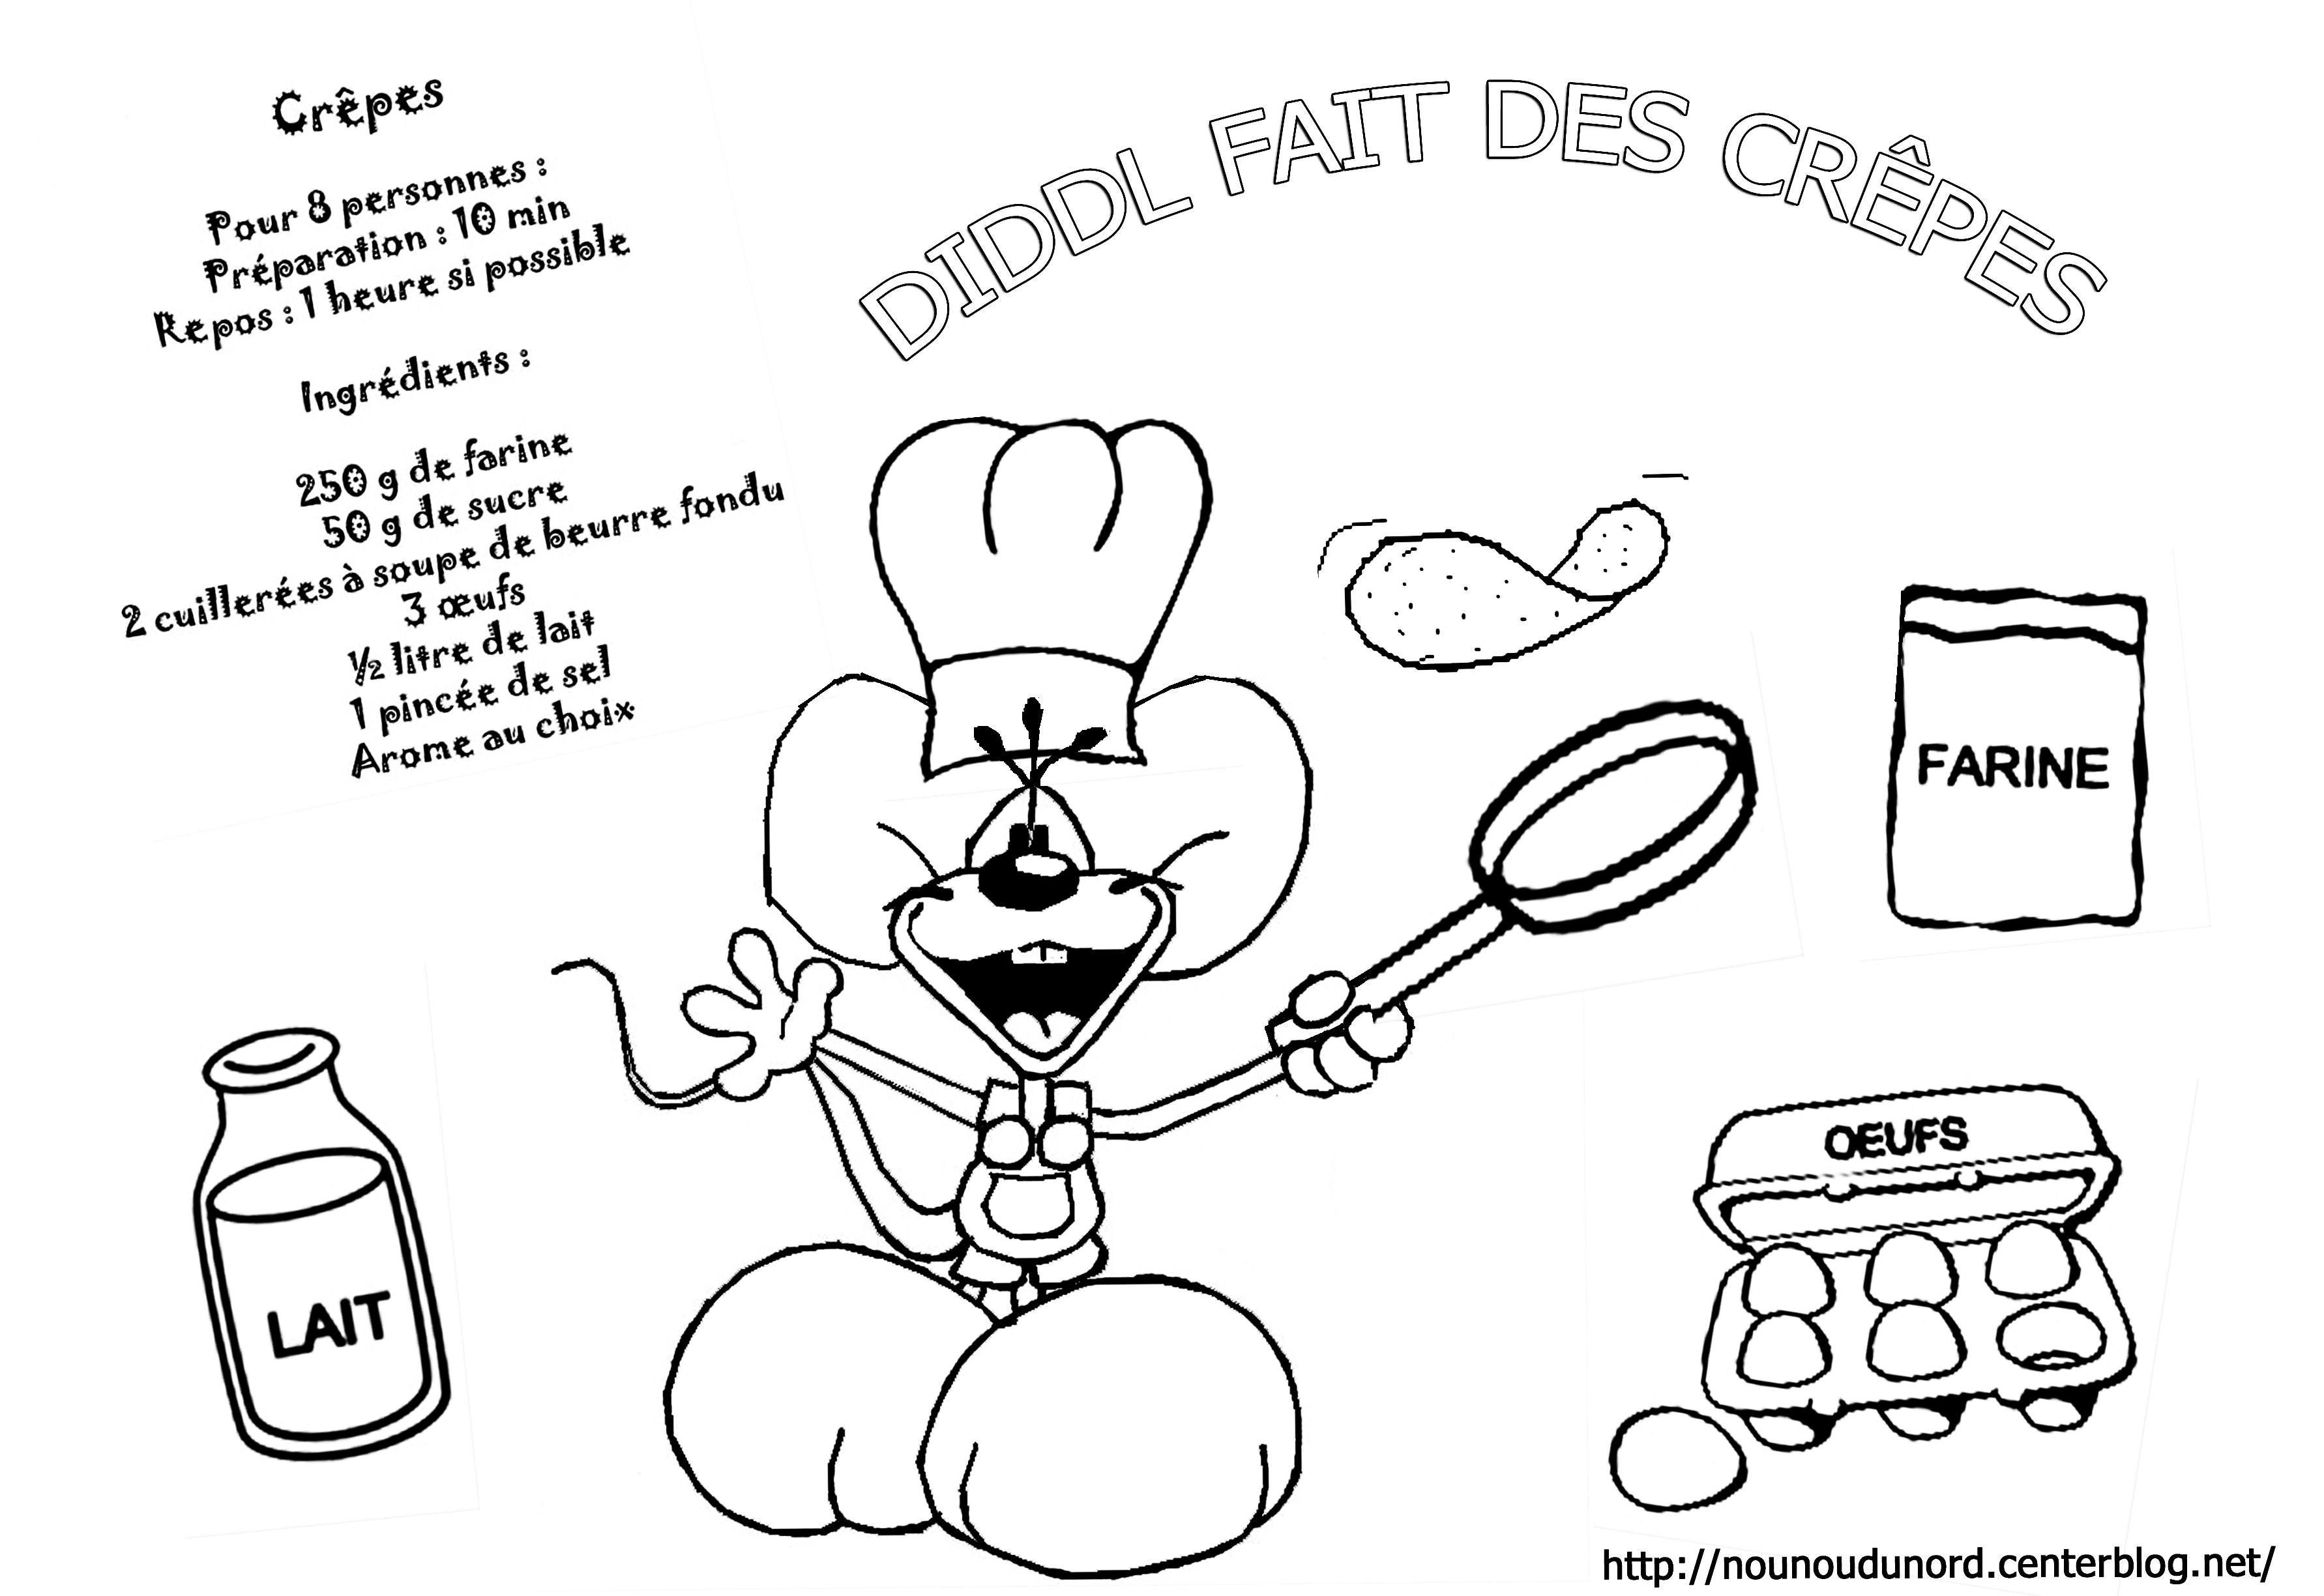 Coloriages crepes chandeleur - Coloriage de diddl ...